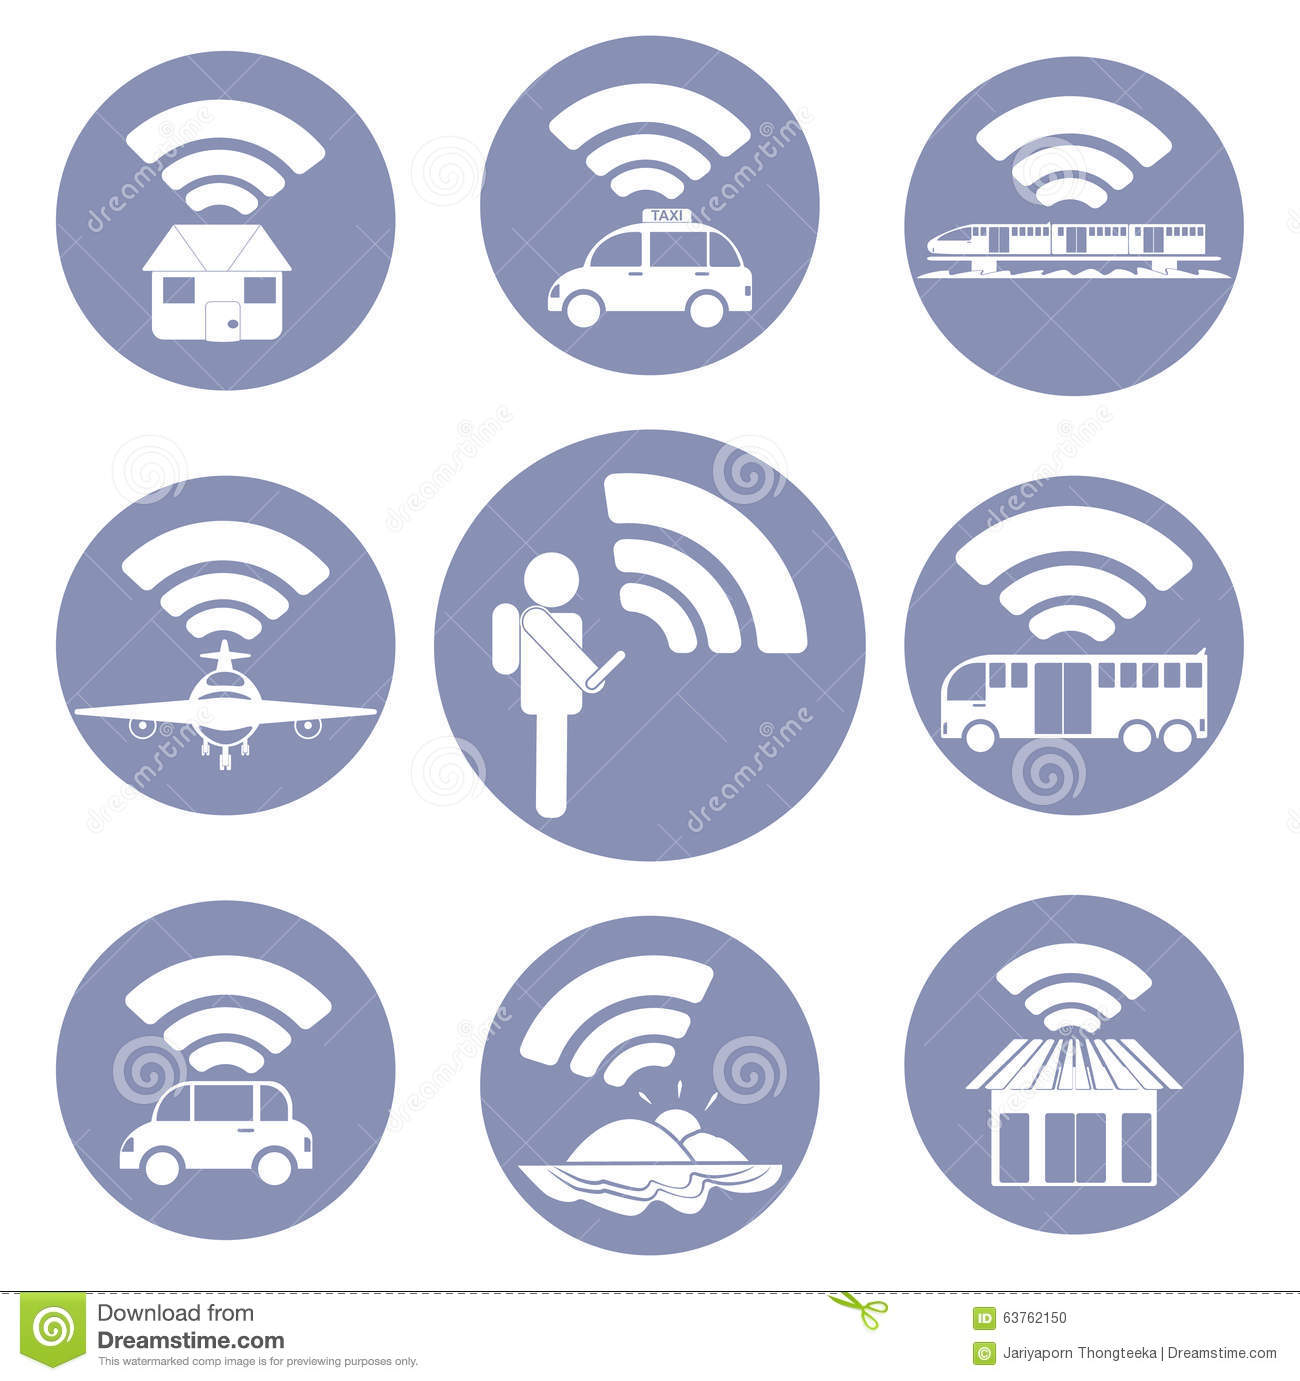 Wi-Fi connection everywhere icon pictograms